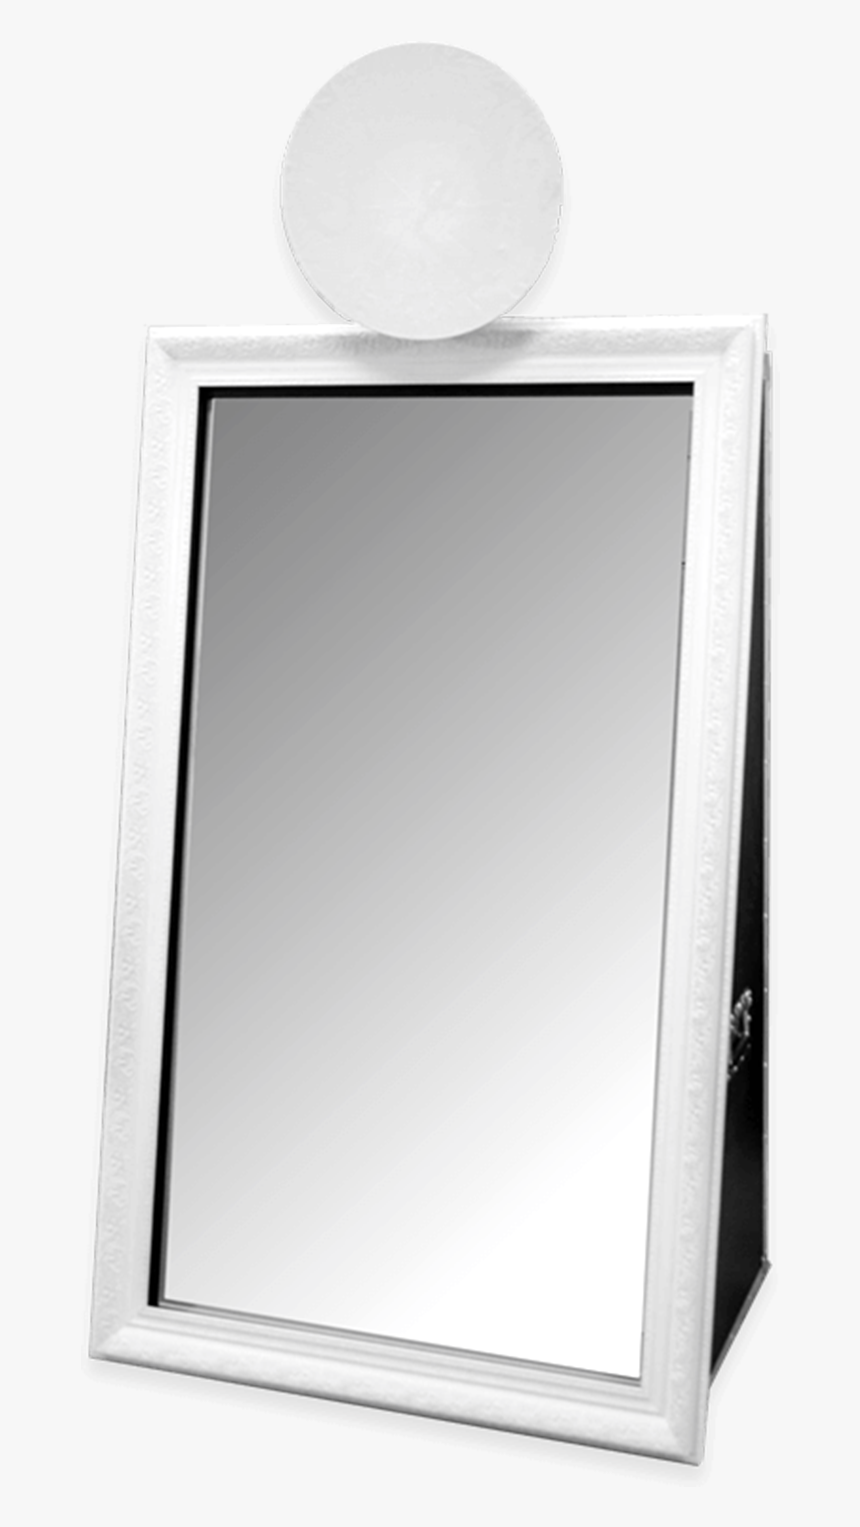 White Mirror Photo Booth, HD Png Download, Free Download